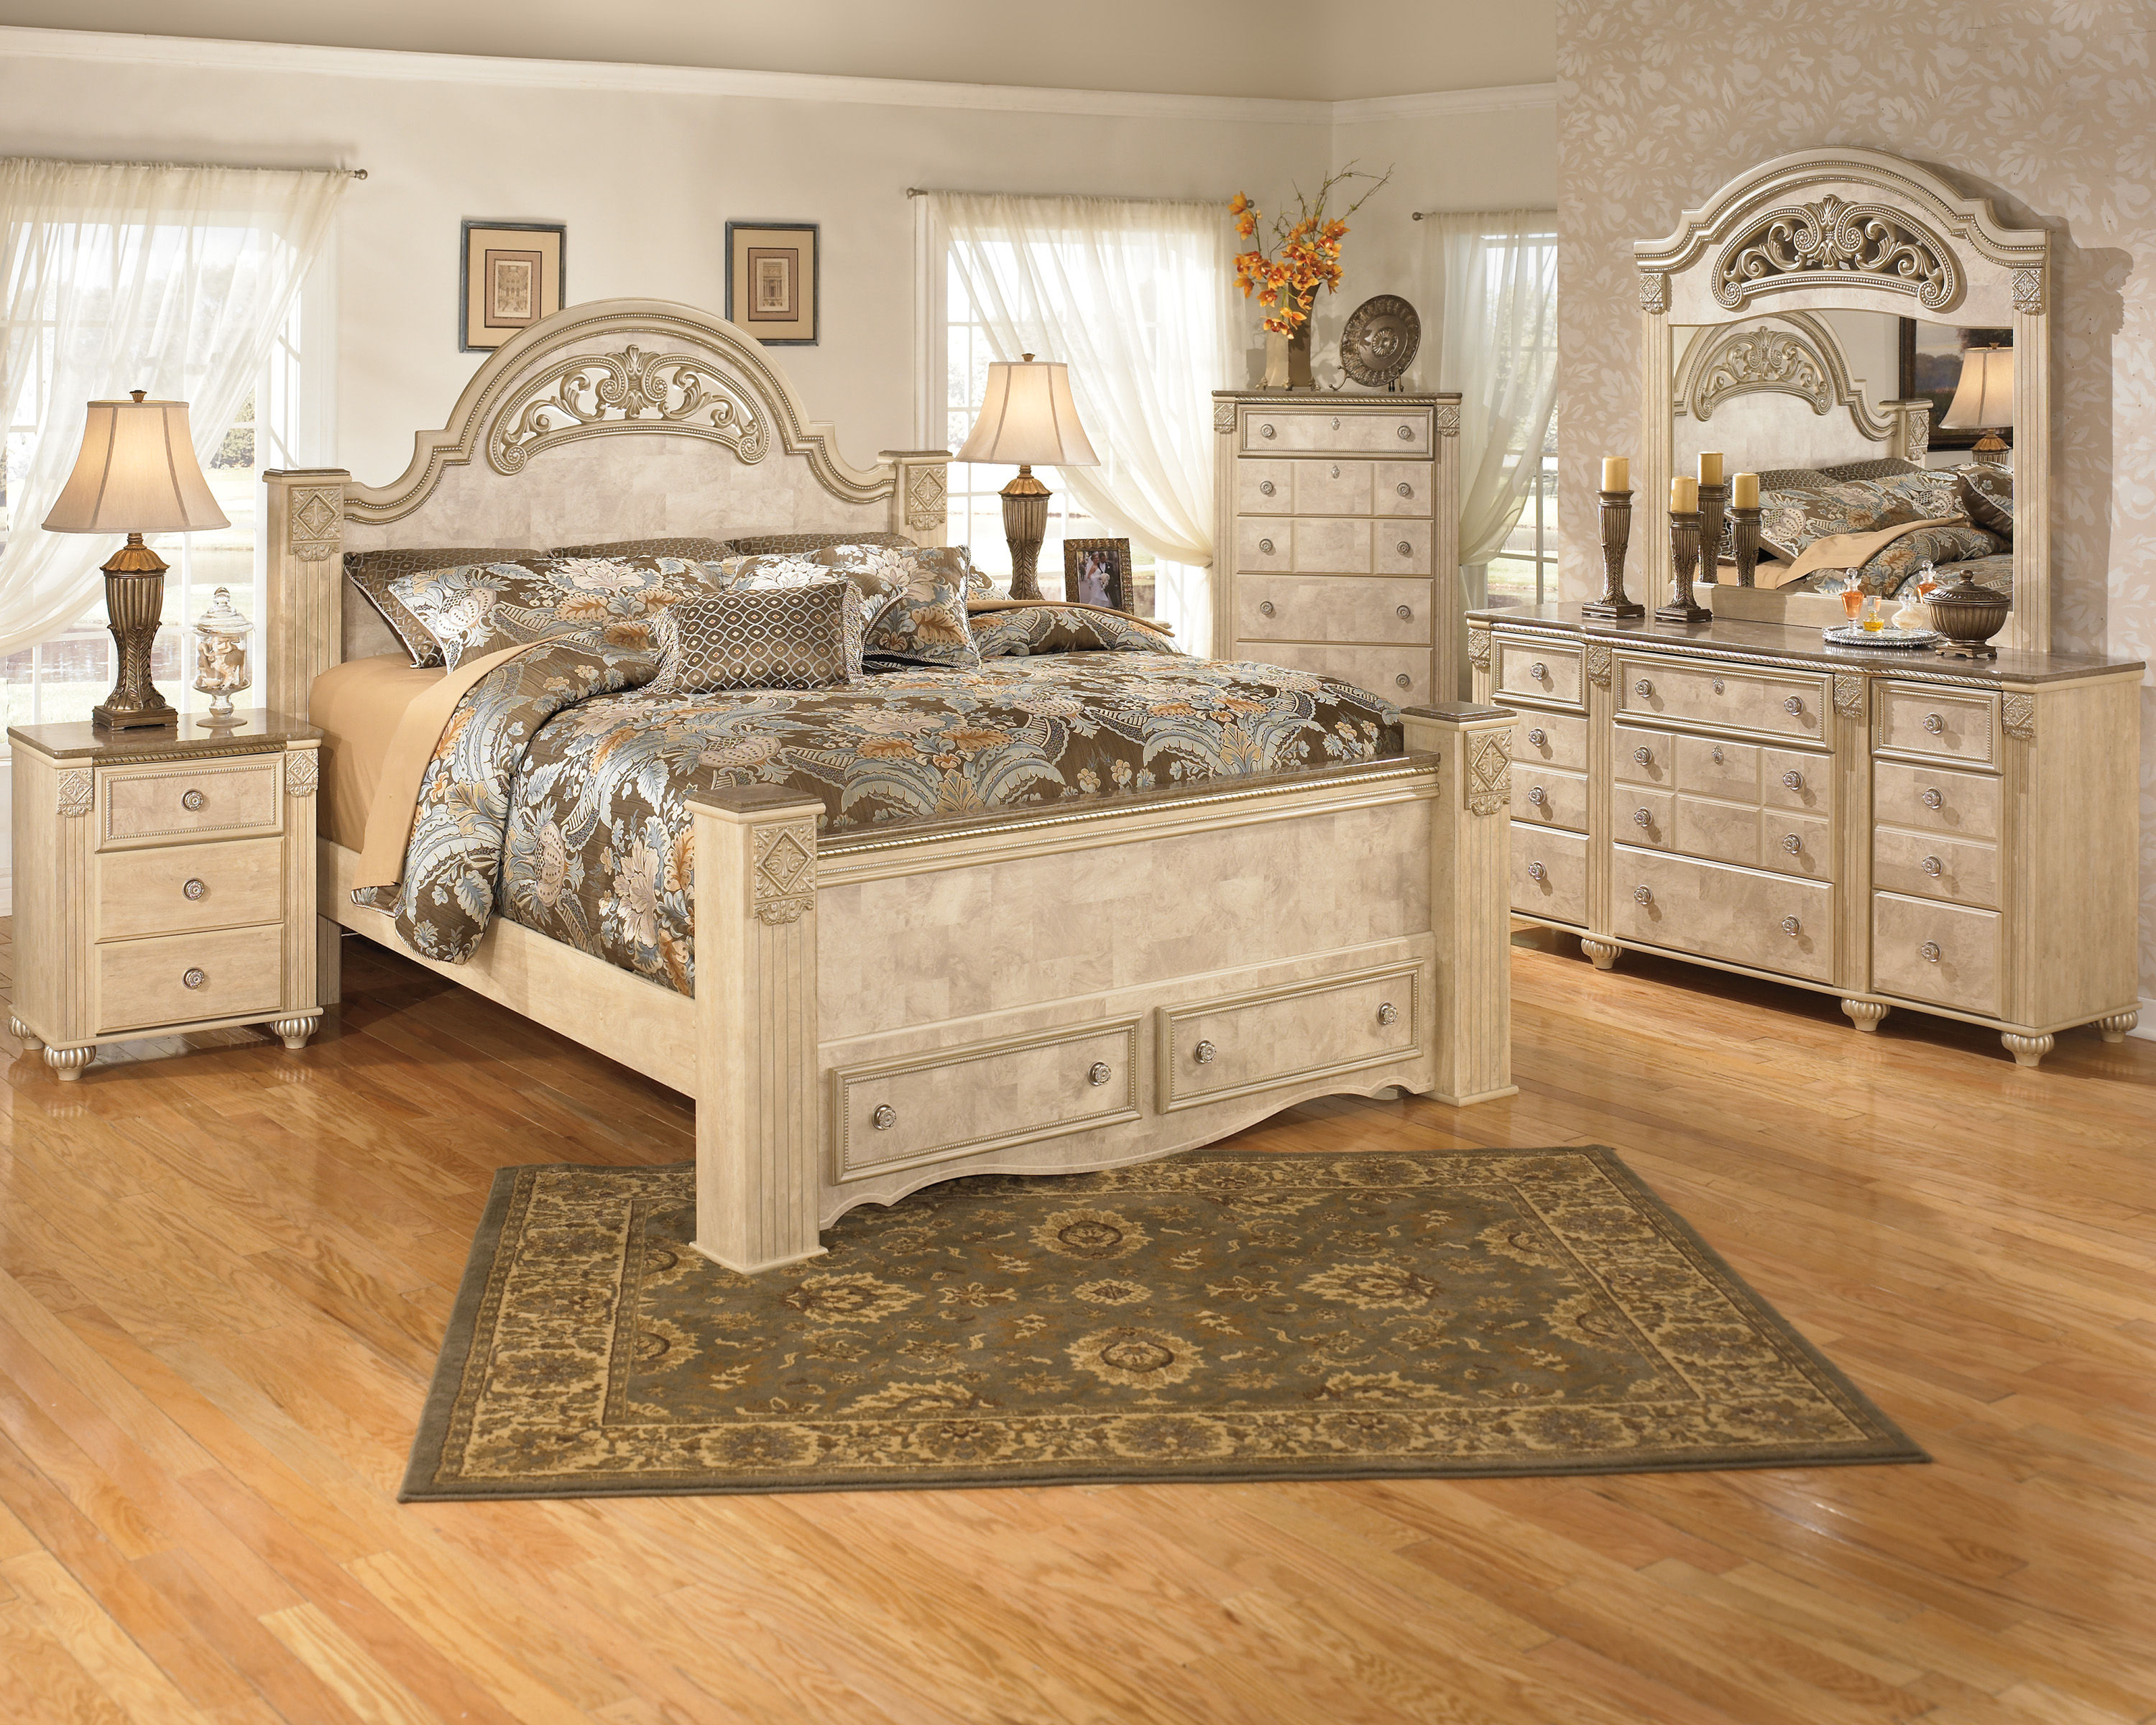 King poster bed set -  Set W King Poster Storage Bed Click To Love Itclick To Enlargeclick To Enlarge